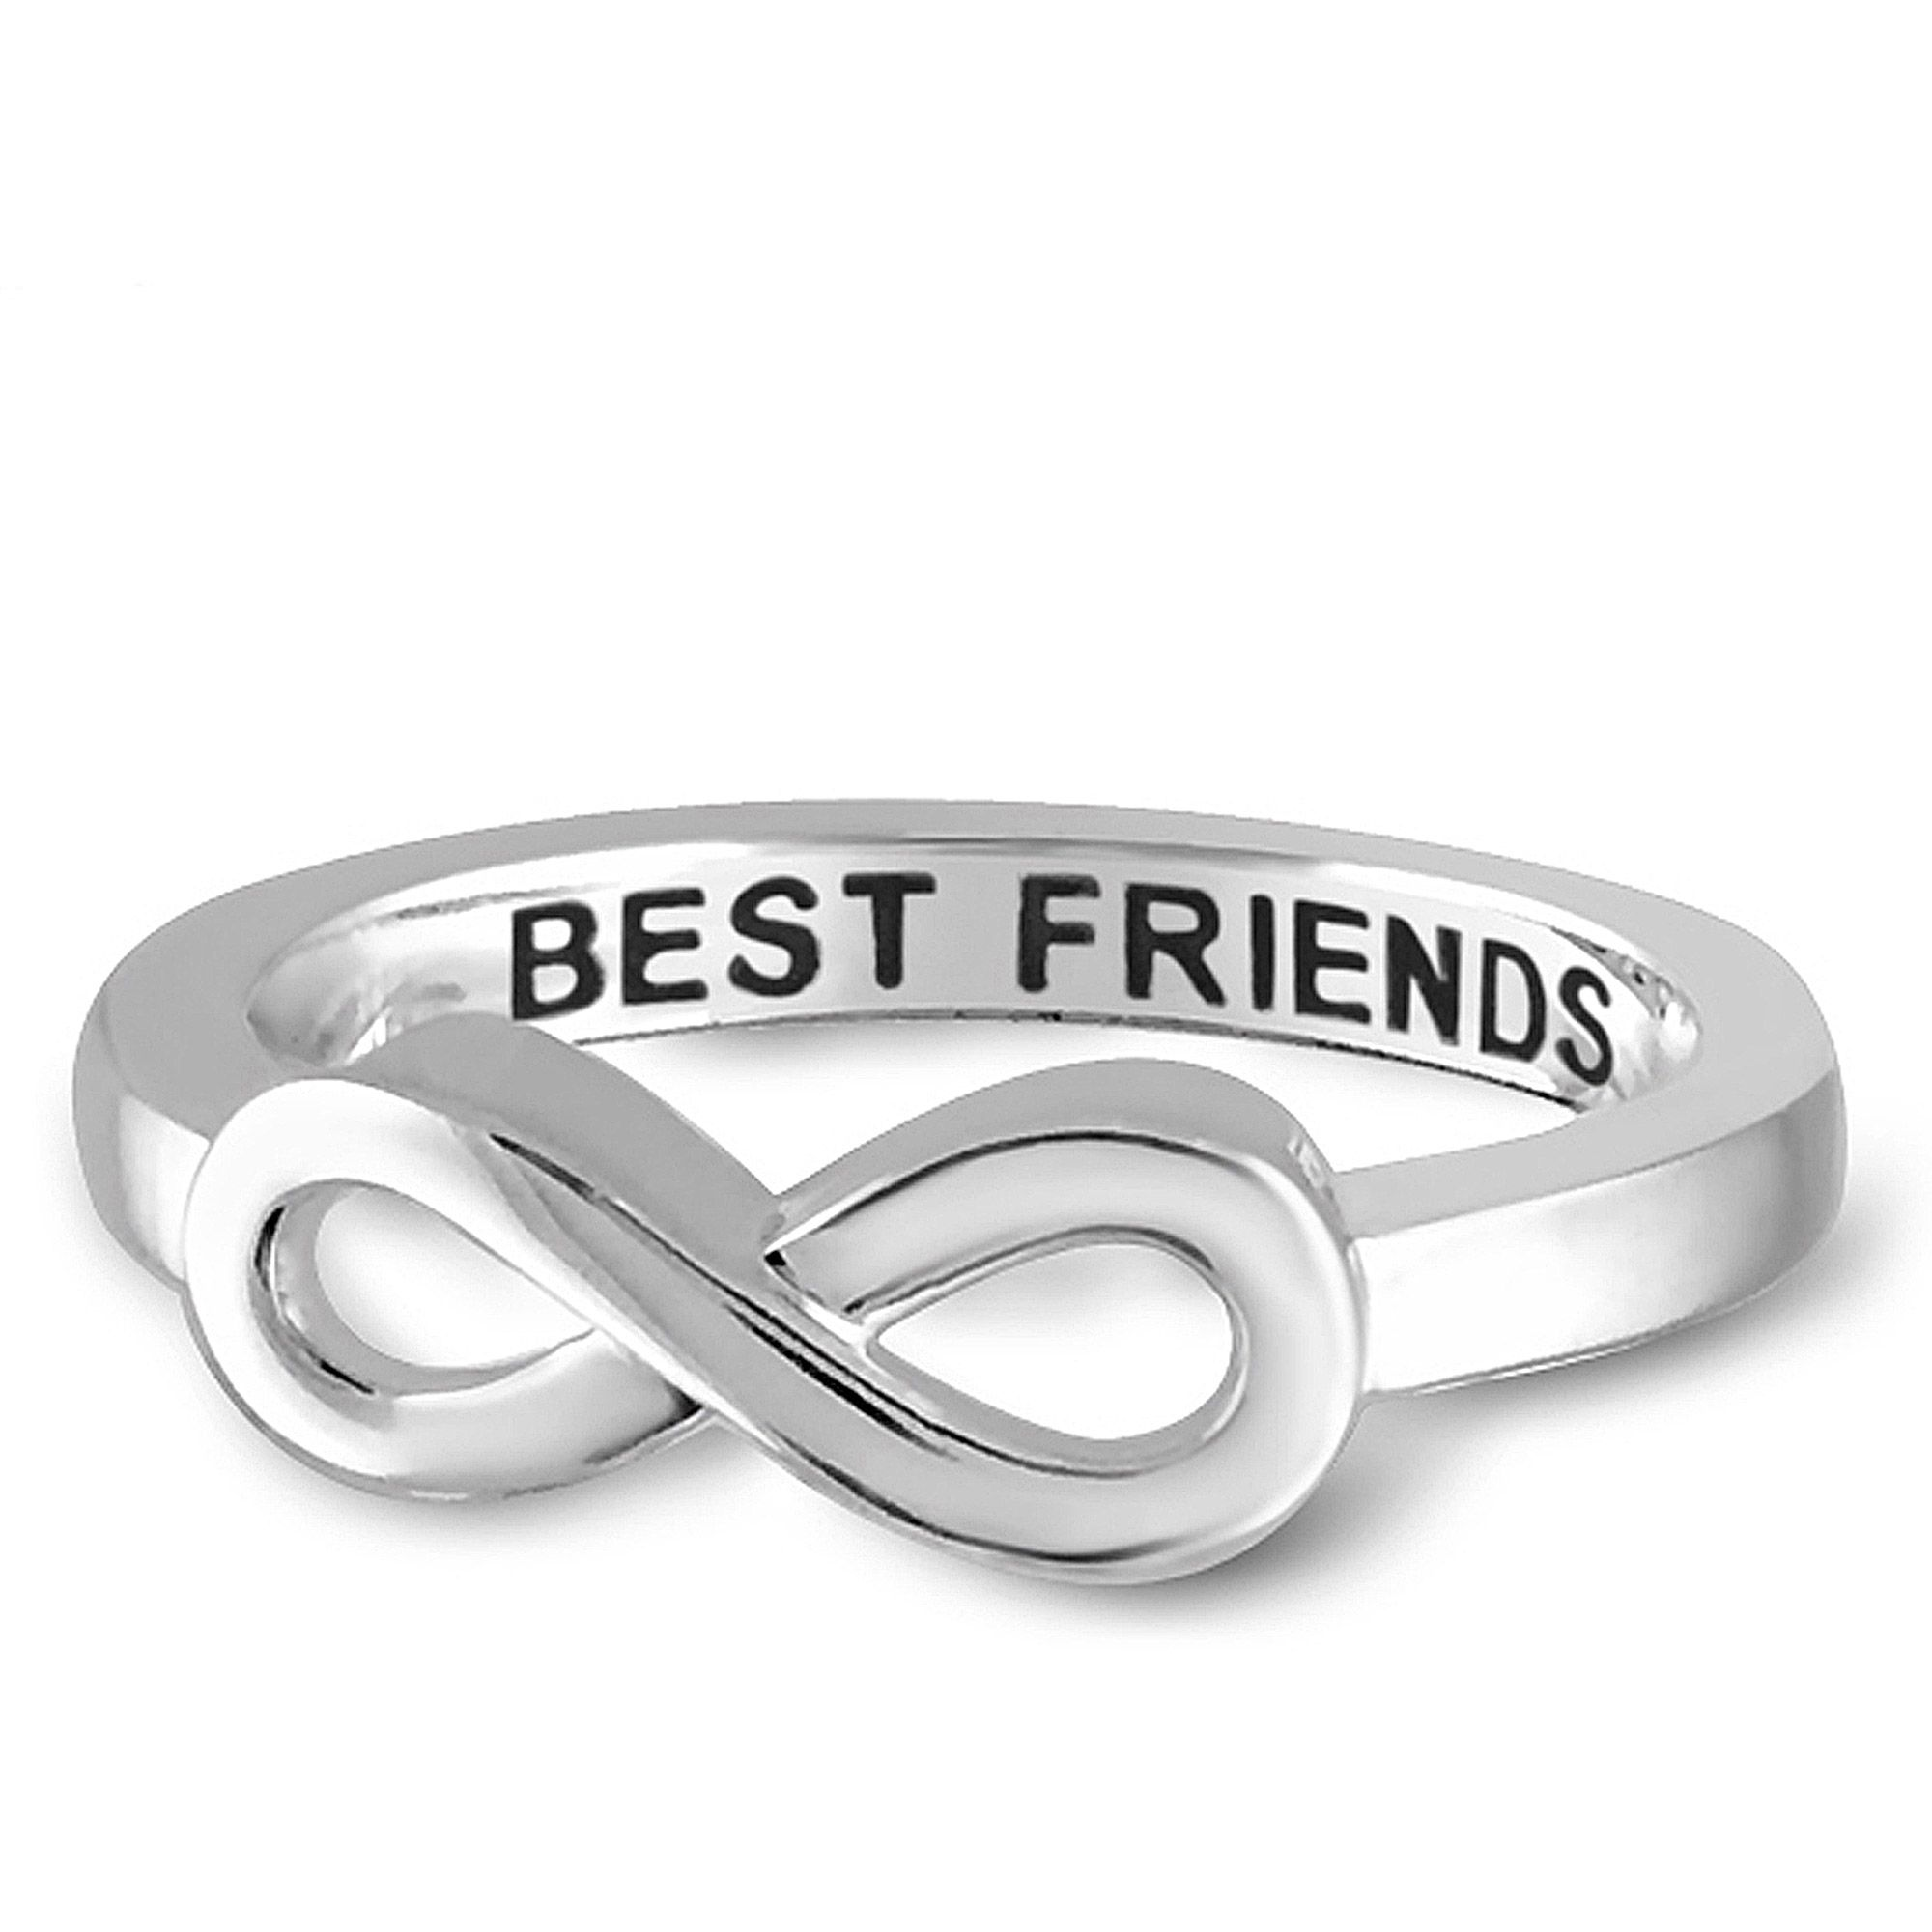 blue rings ring friendship diamond square buenaventura elizabeth liz products